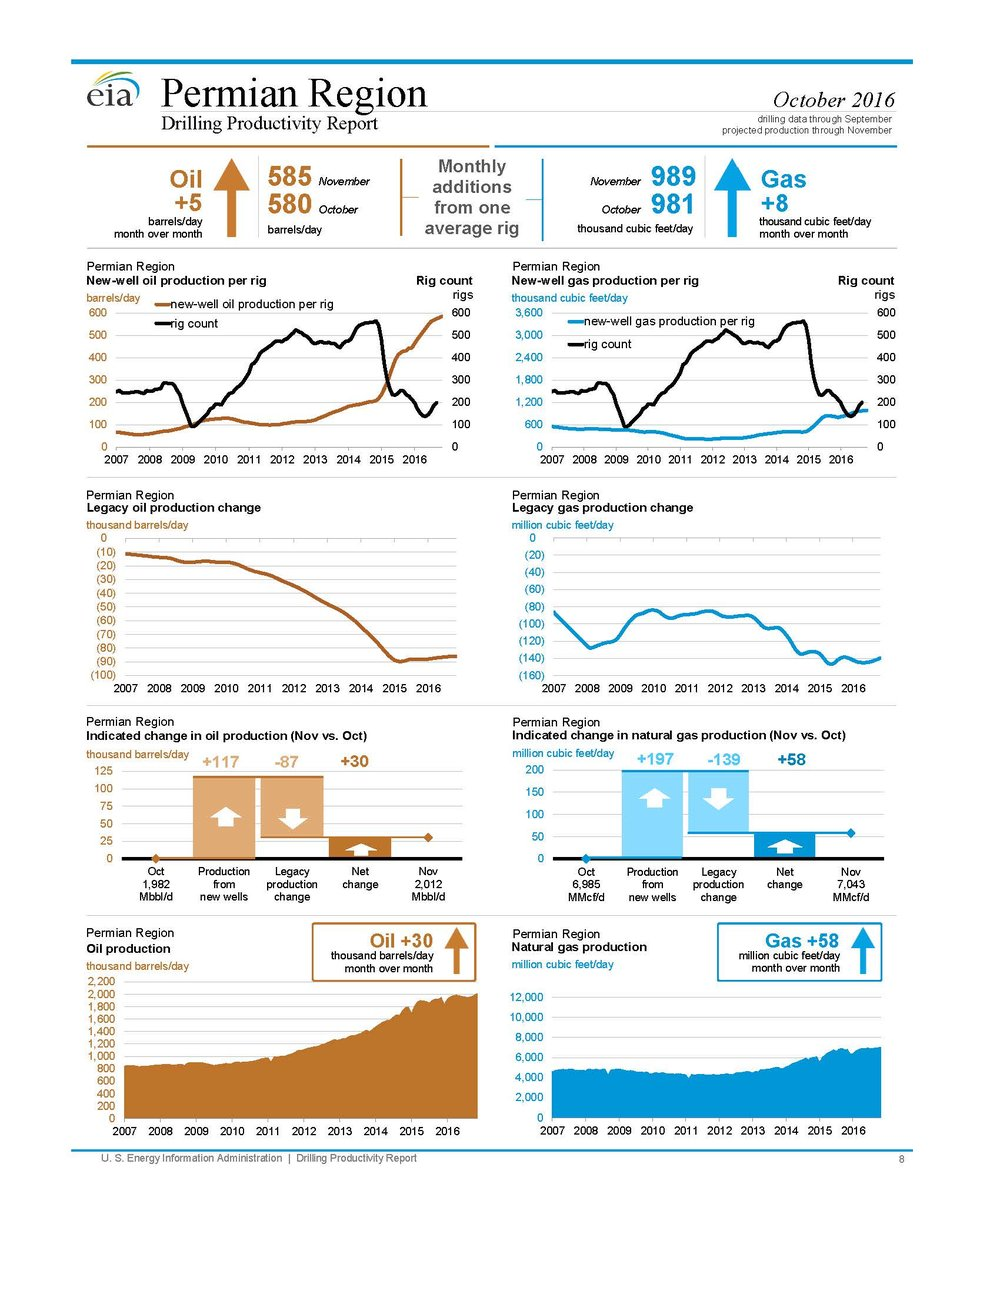 Image and reports from  www.eia.gov